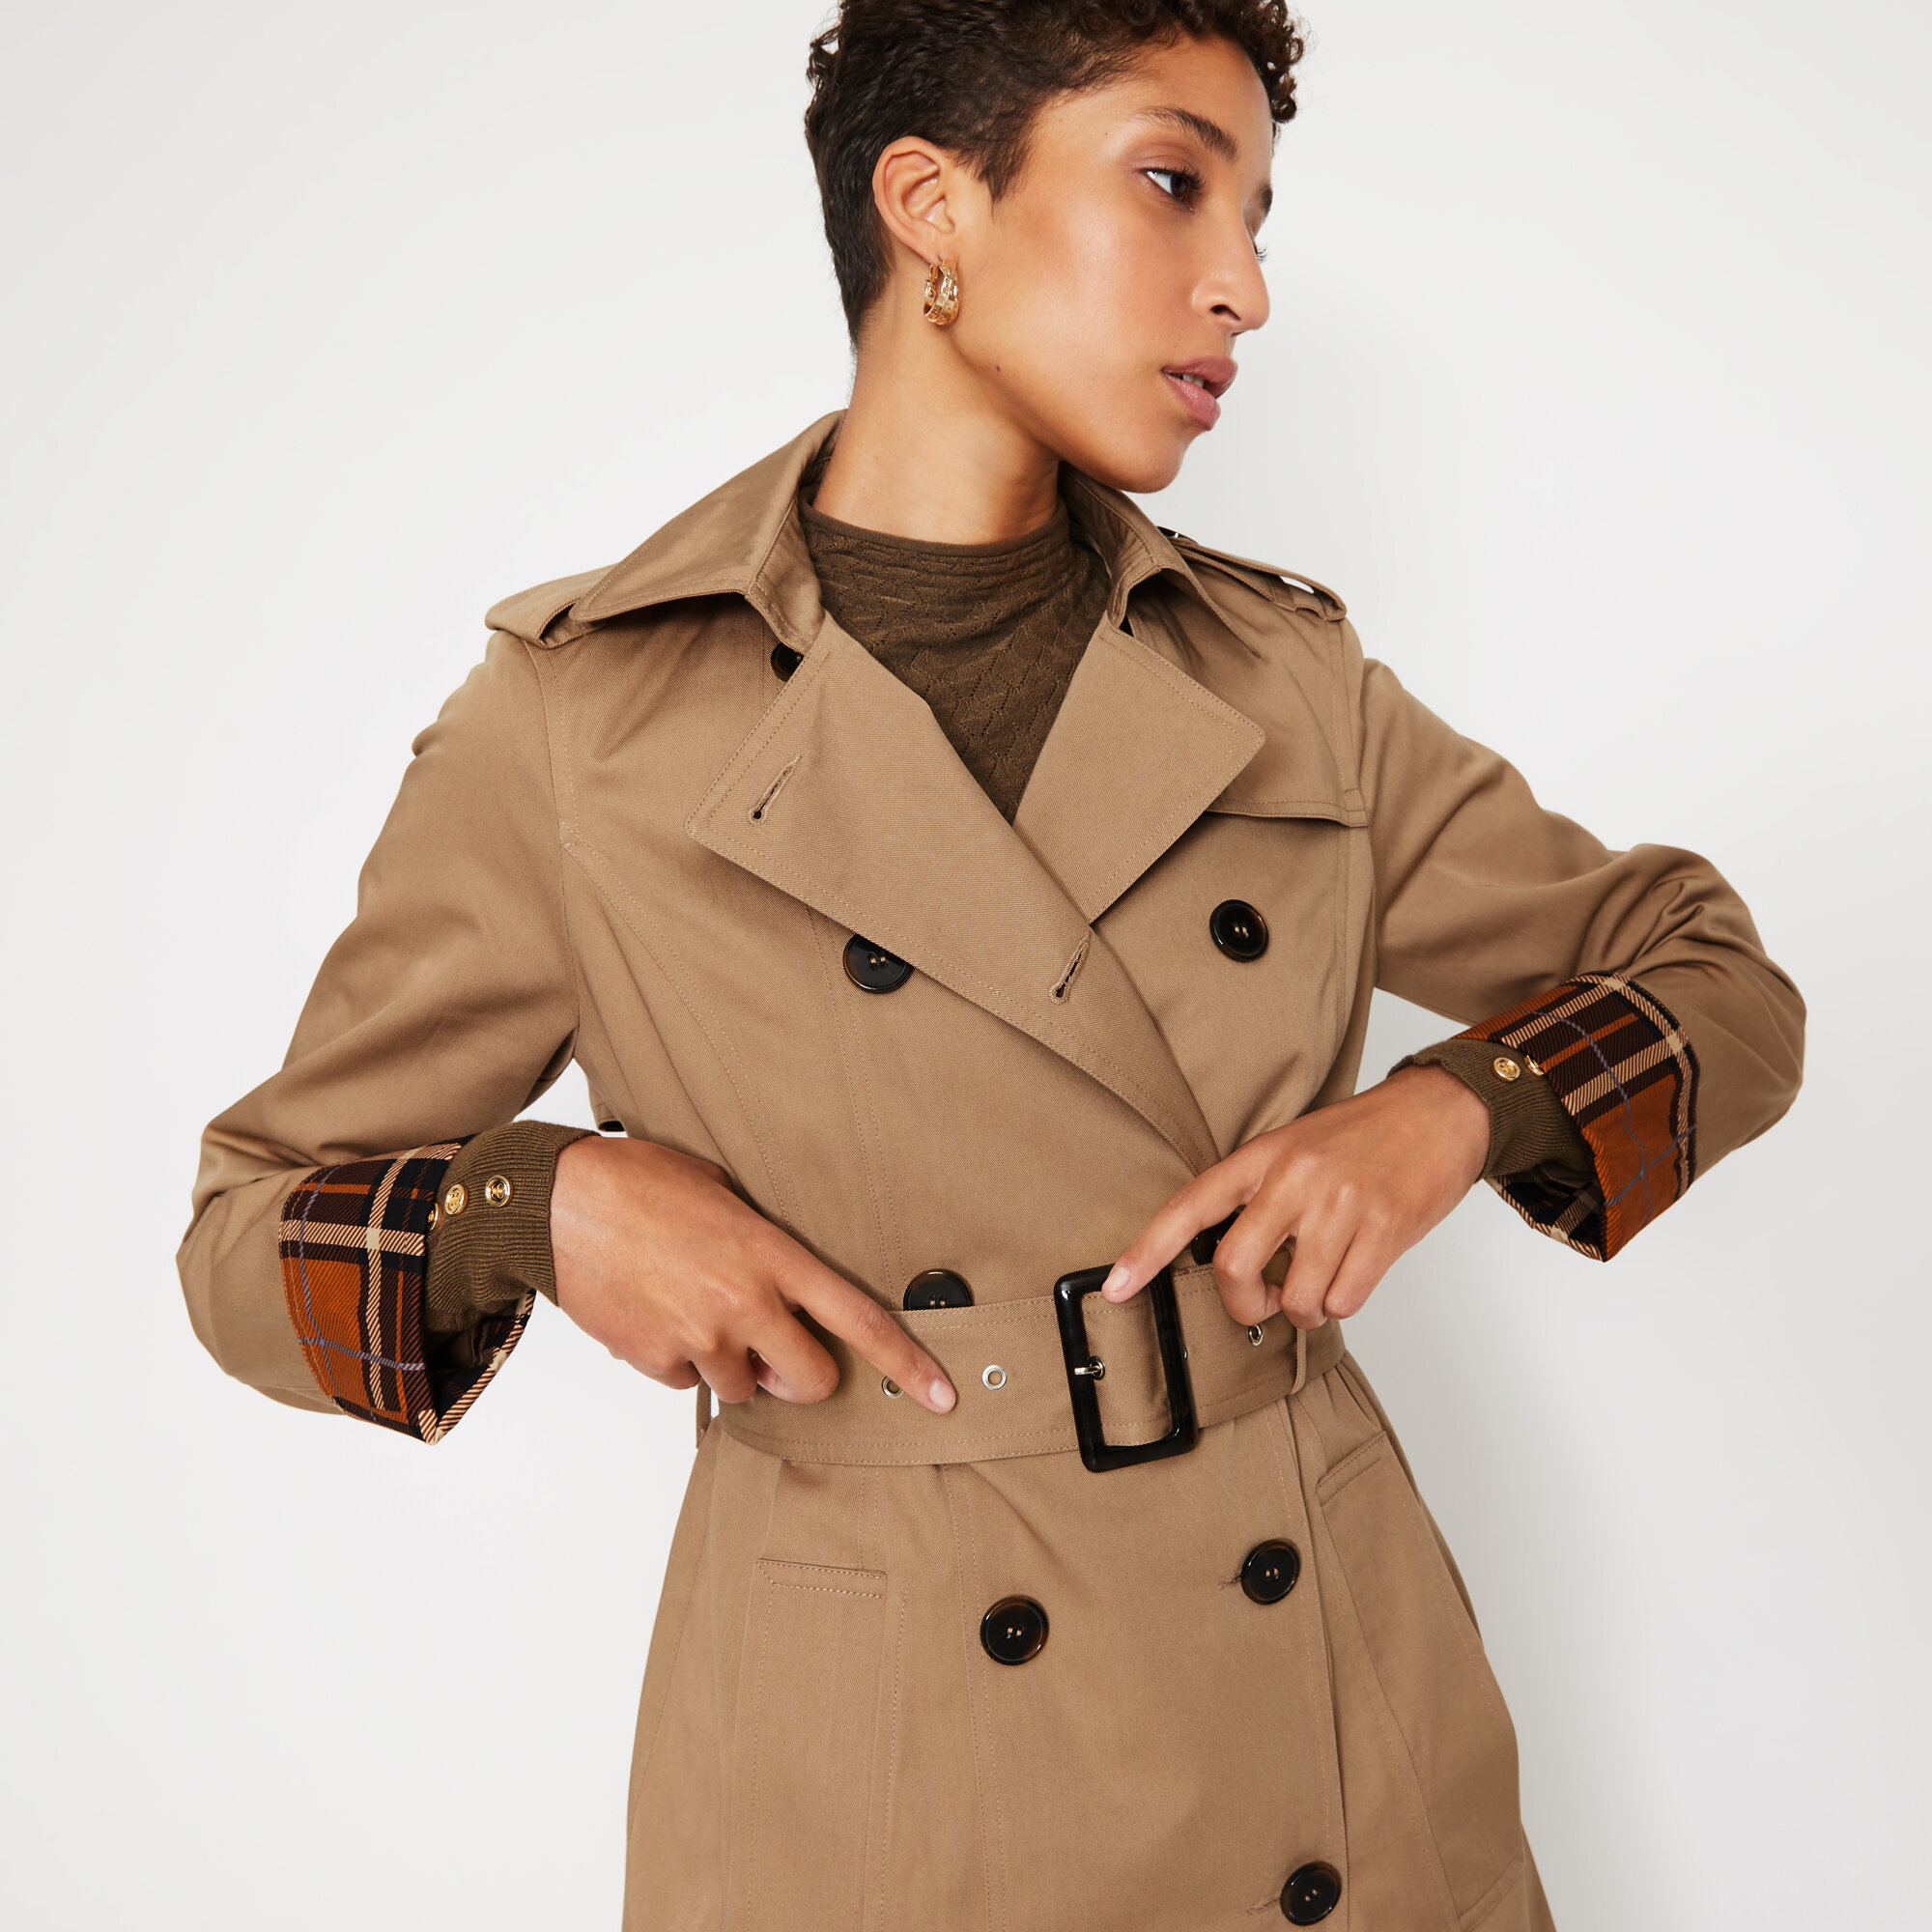 Trench Coats - I've had my Massimo Dutti trench coat for years now. I bought it as an invest piece and it's lasted me so well, no matter what the weather. Sadly it's now out of stock but classic trench coats are always easy to find, like this one from Warehouse and this affordable style from ASOS.